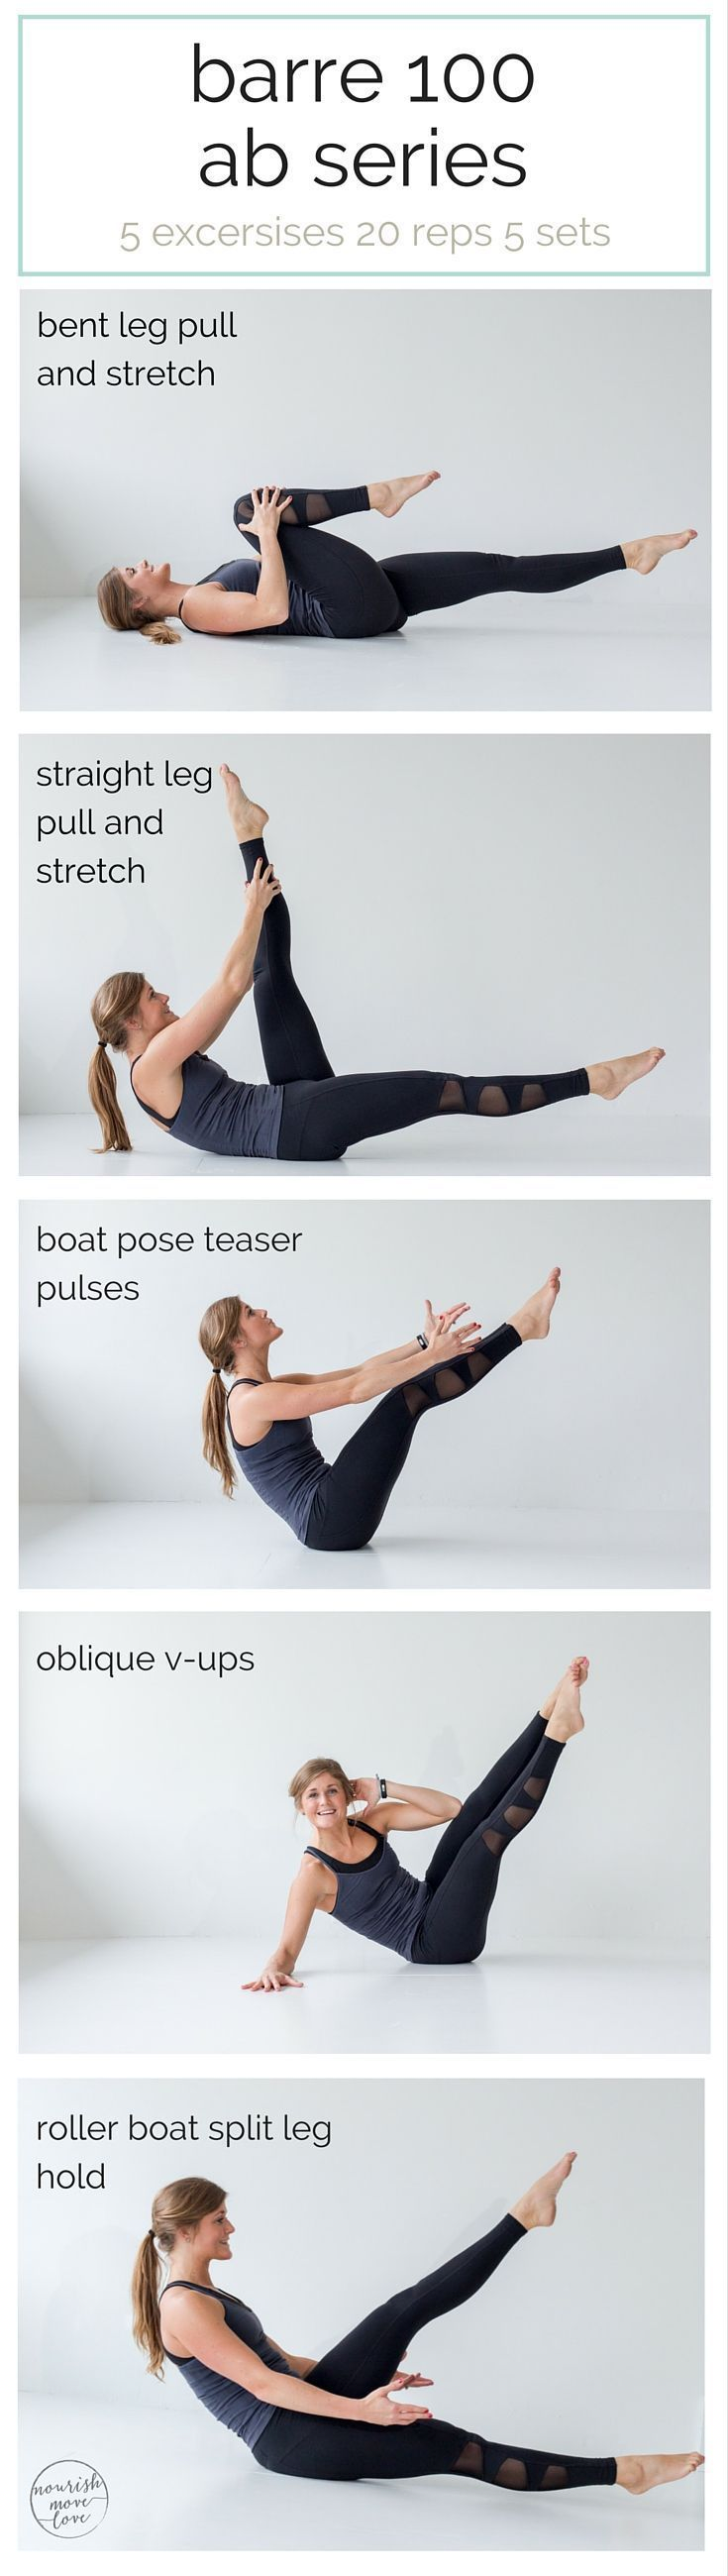 awesome best barre exercises for flat abs {barre 100 ab series} - nourish move love